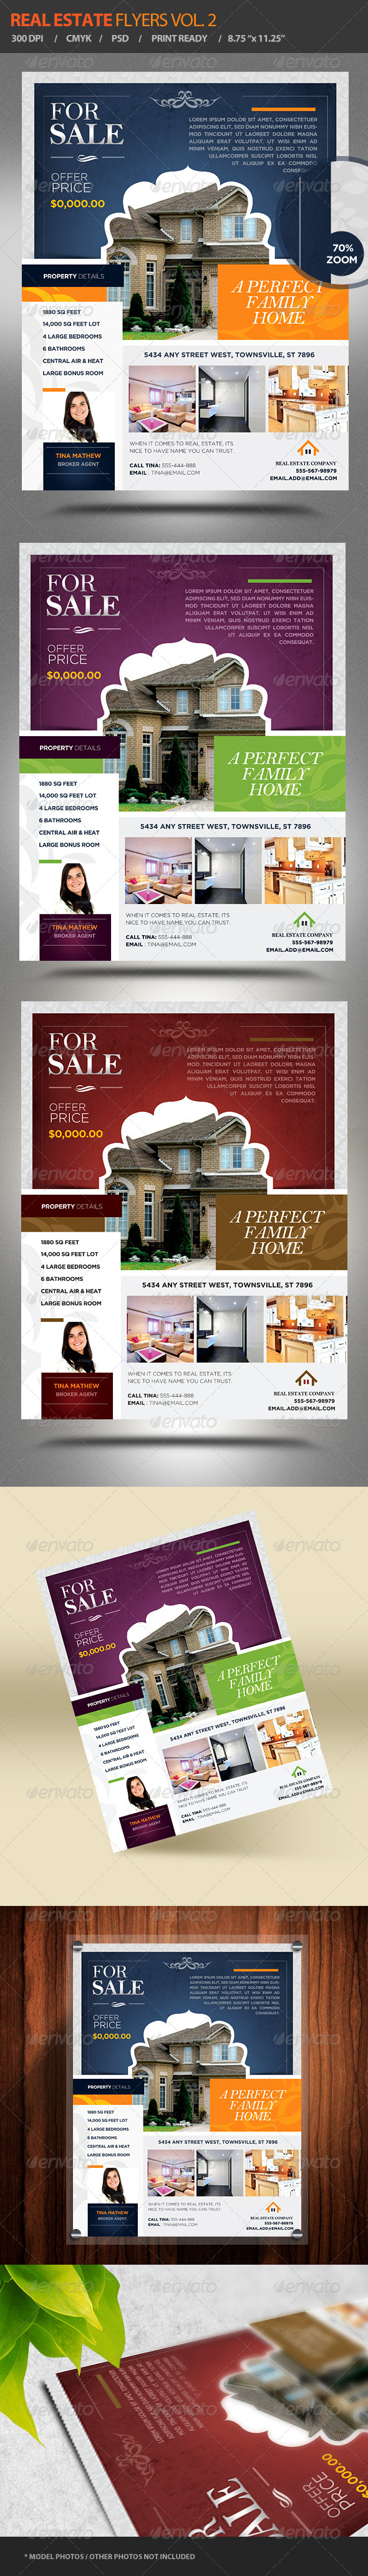 GraphicRiver Real Estate Flyers Vol 2 6332725